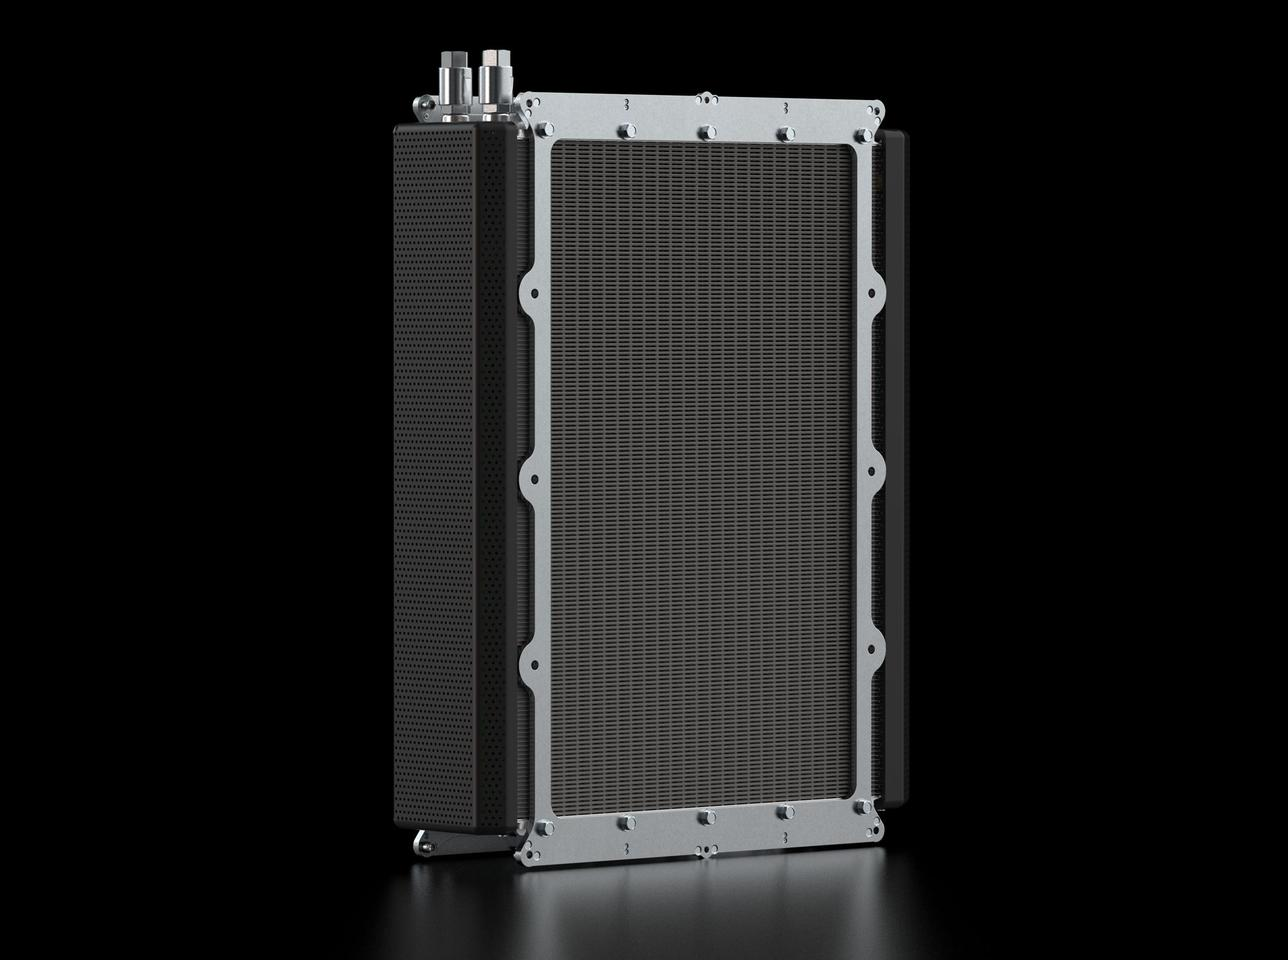 German company BASF and hydrogen fuel cell specialists HyPoint are partnering on a new proton exchange membrane that is expected to boost fuel cell power by 50%